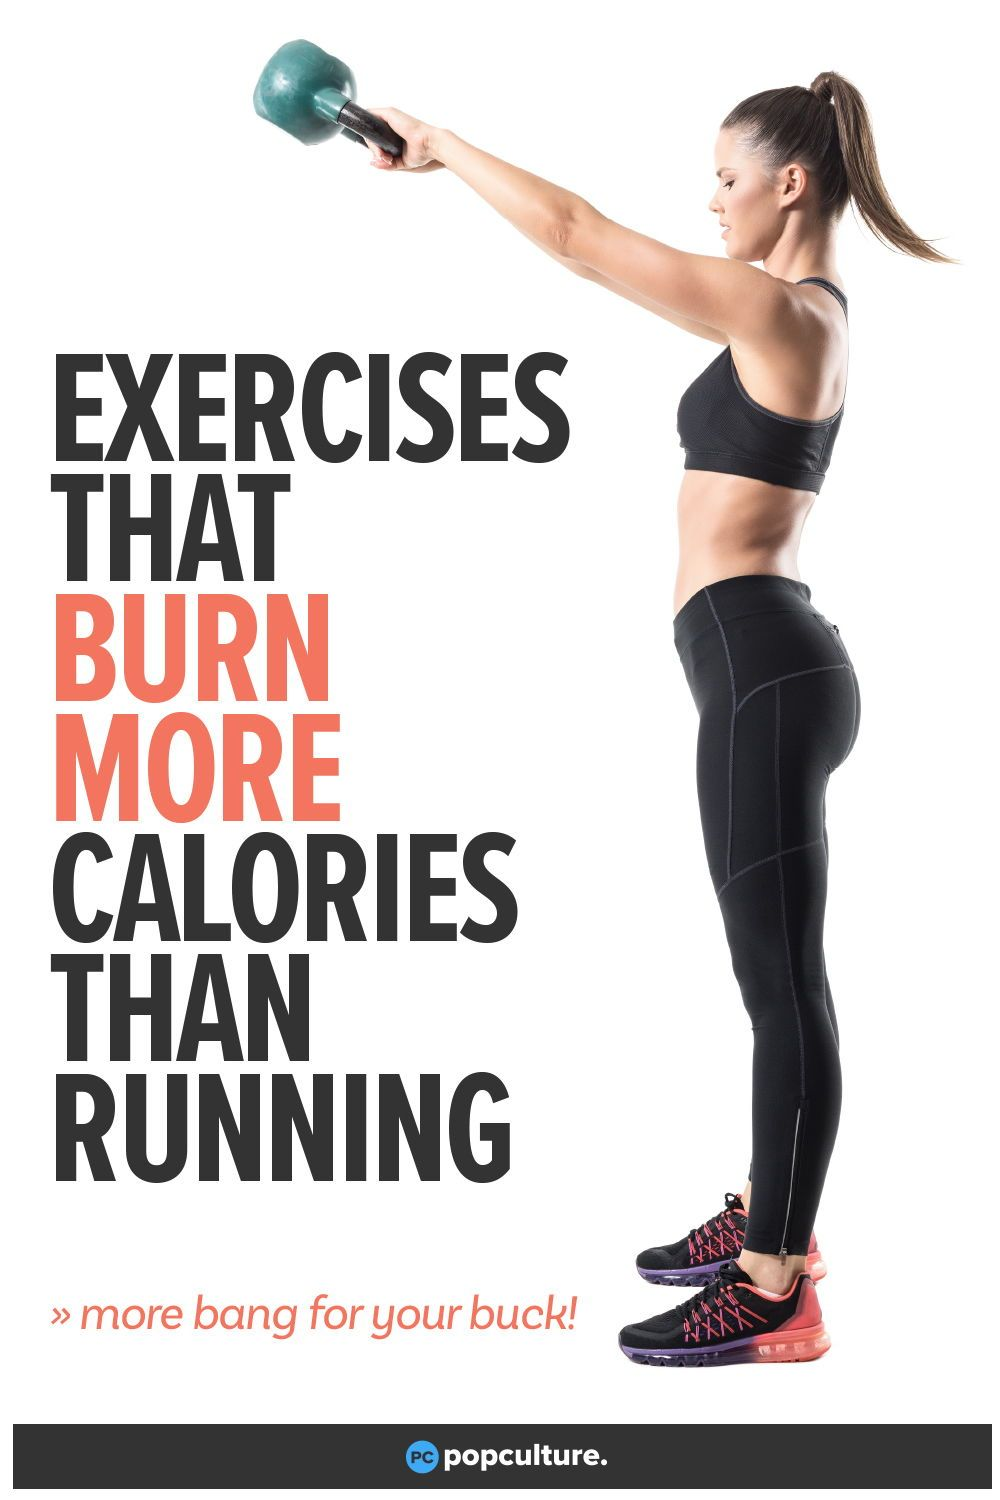 6 effective ways to work up a solid calorie burn other than hitting the road for a run. Check out: Exercises That Burn More Calories Than Running